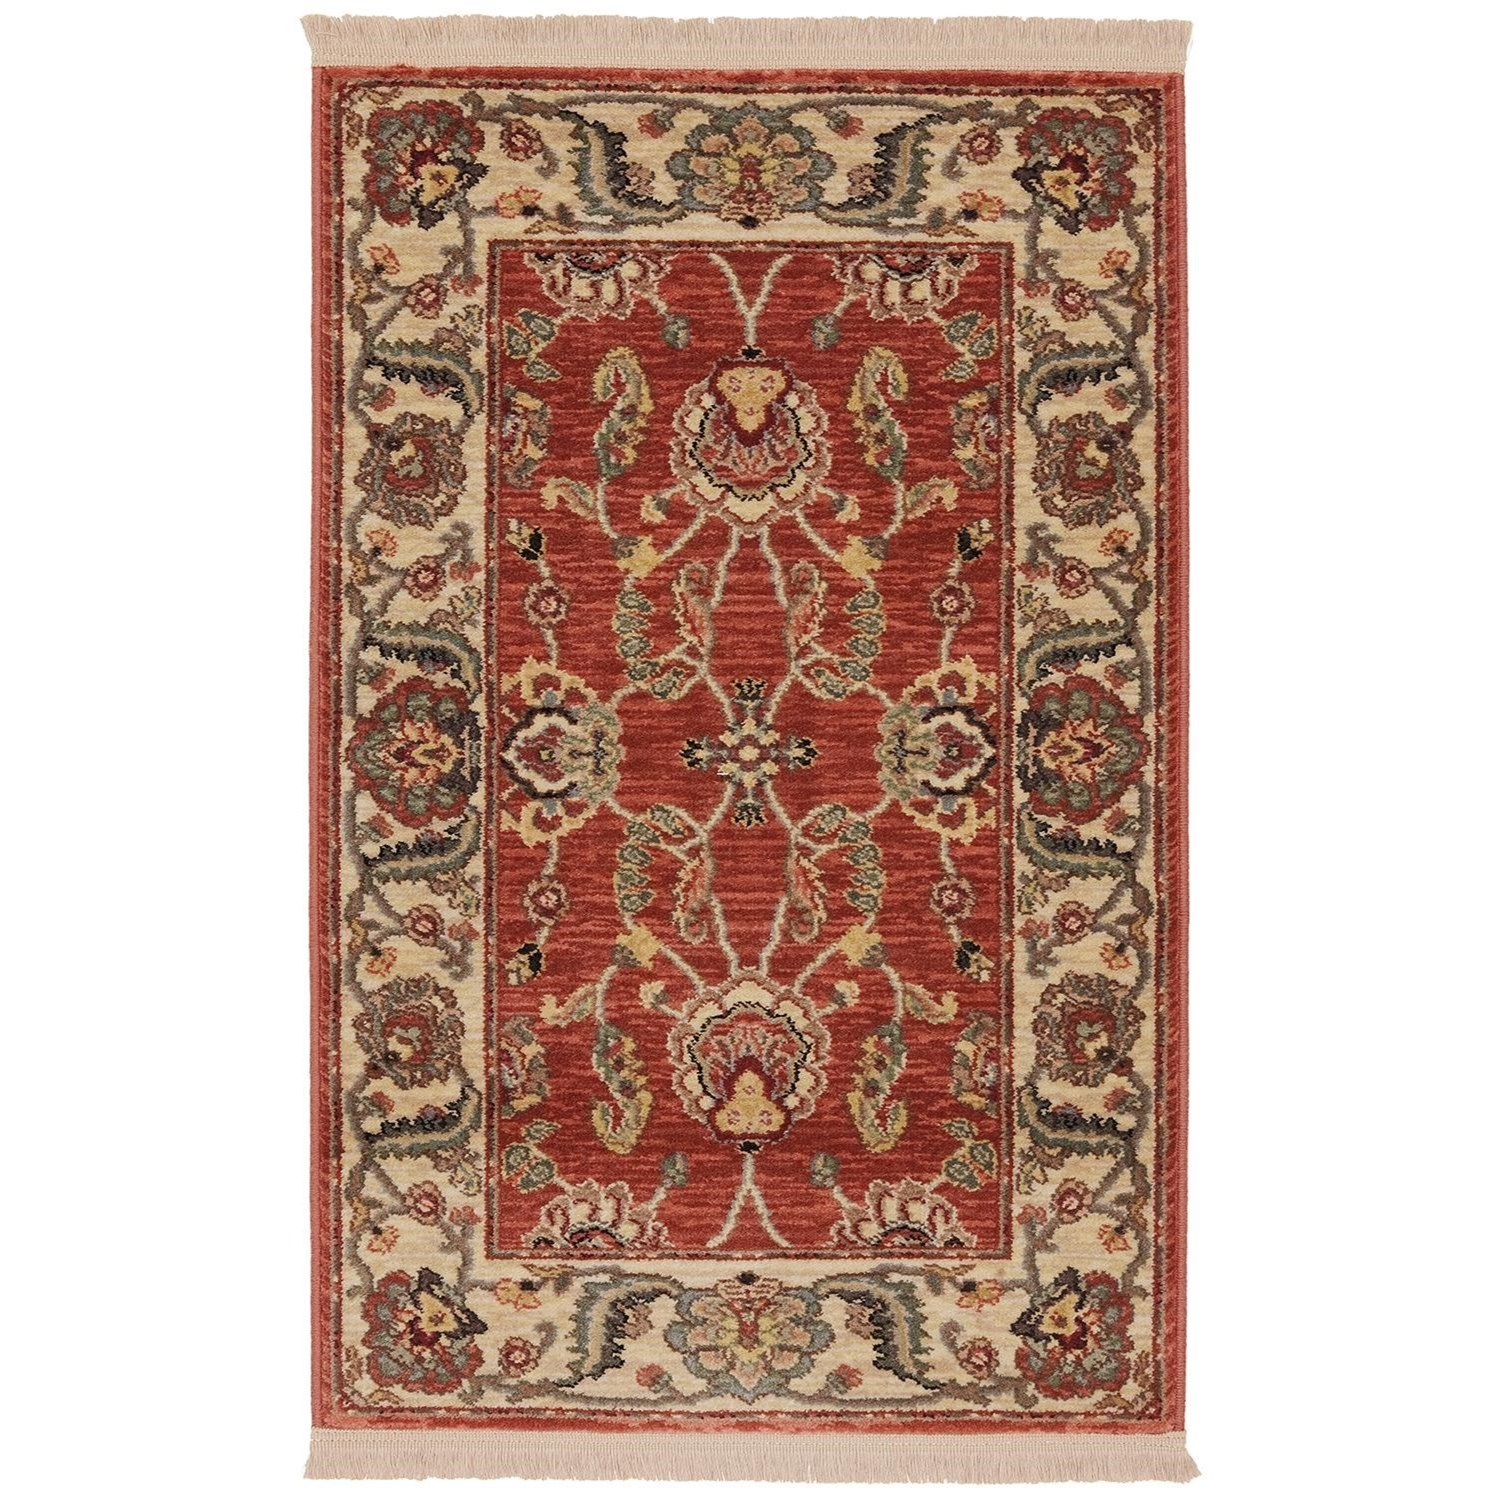 Karastan Rugs Ashara 5'9x9' Agra Red Rug - Item Number: 00549 15002 069108